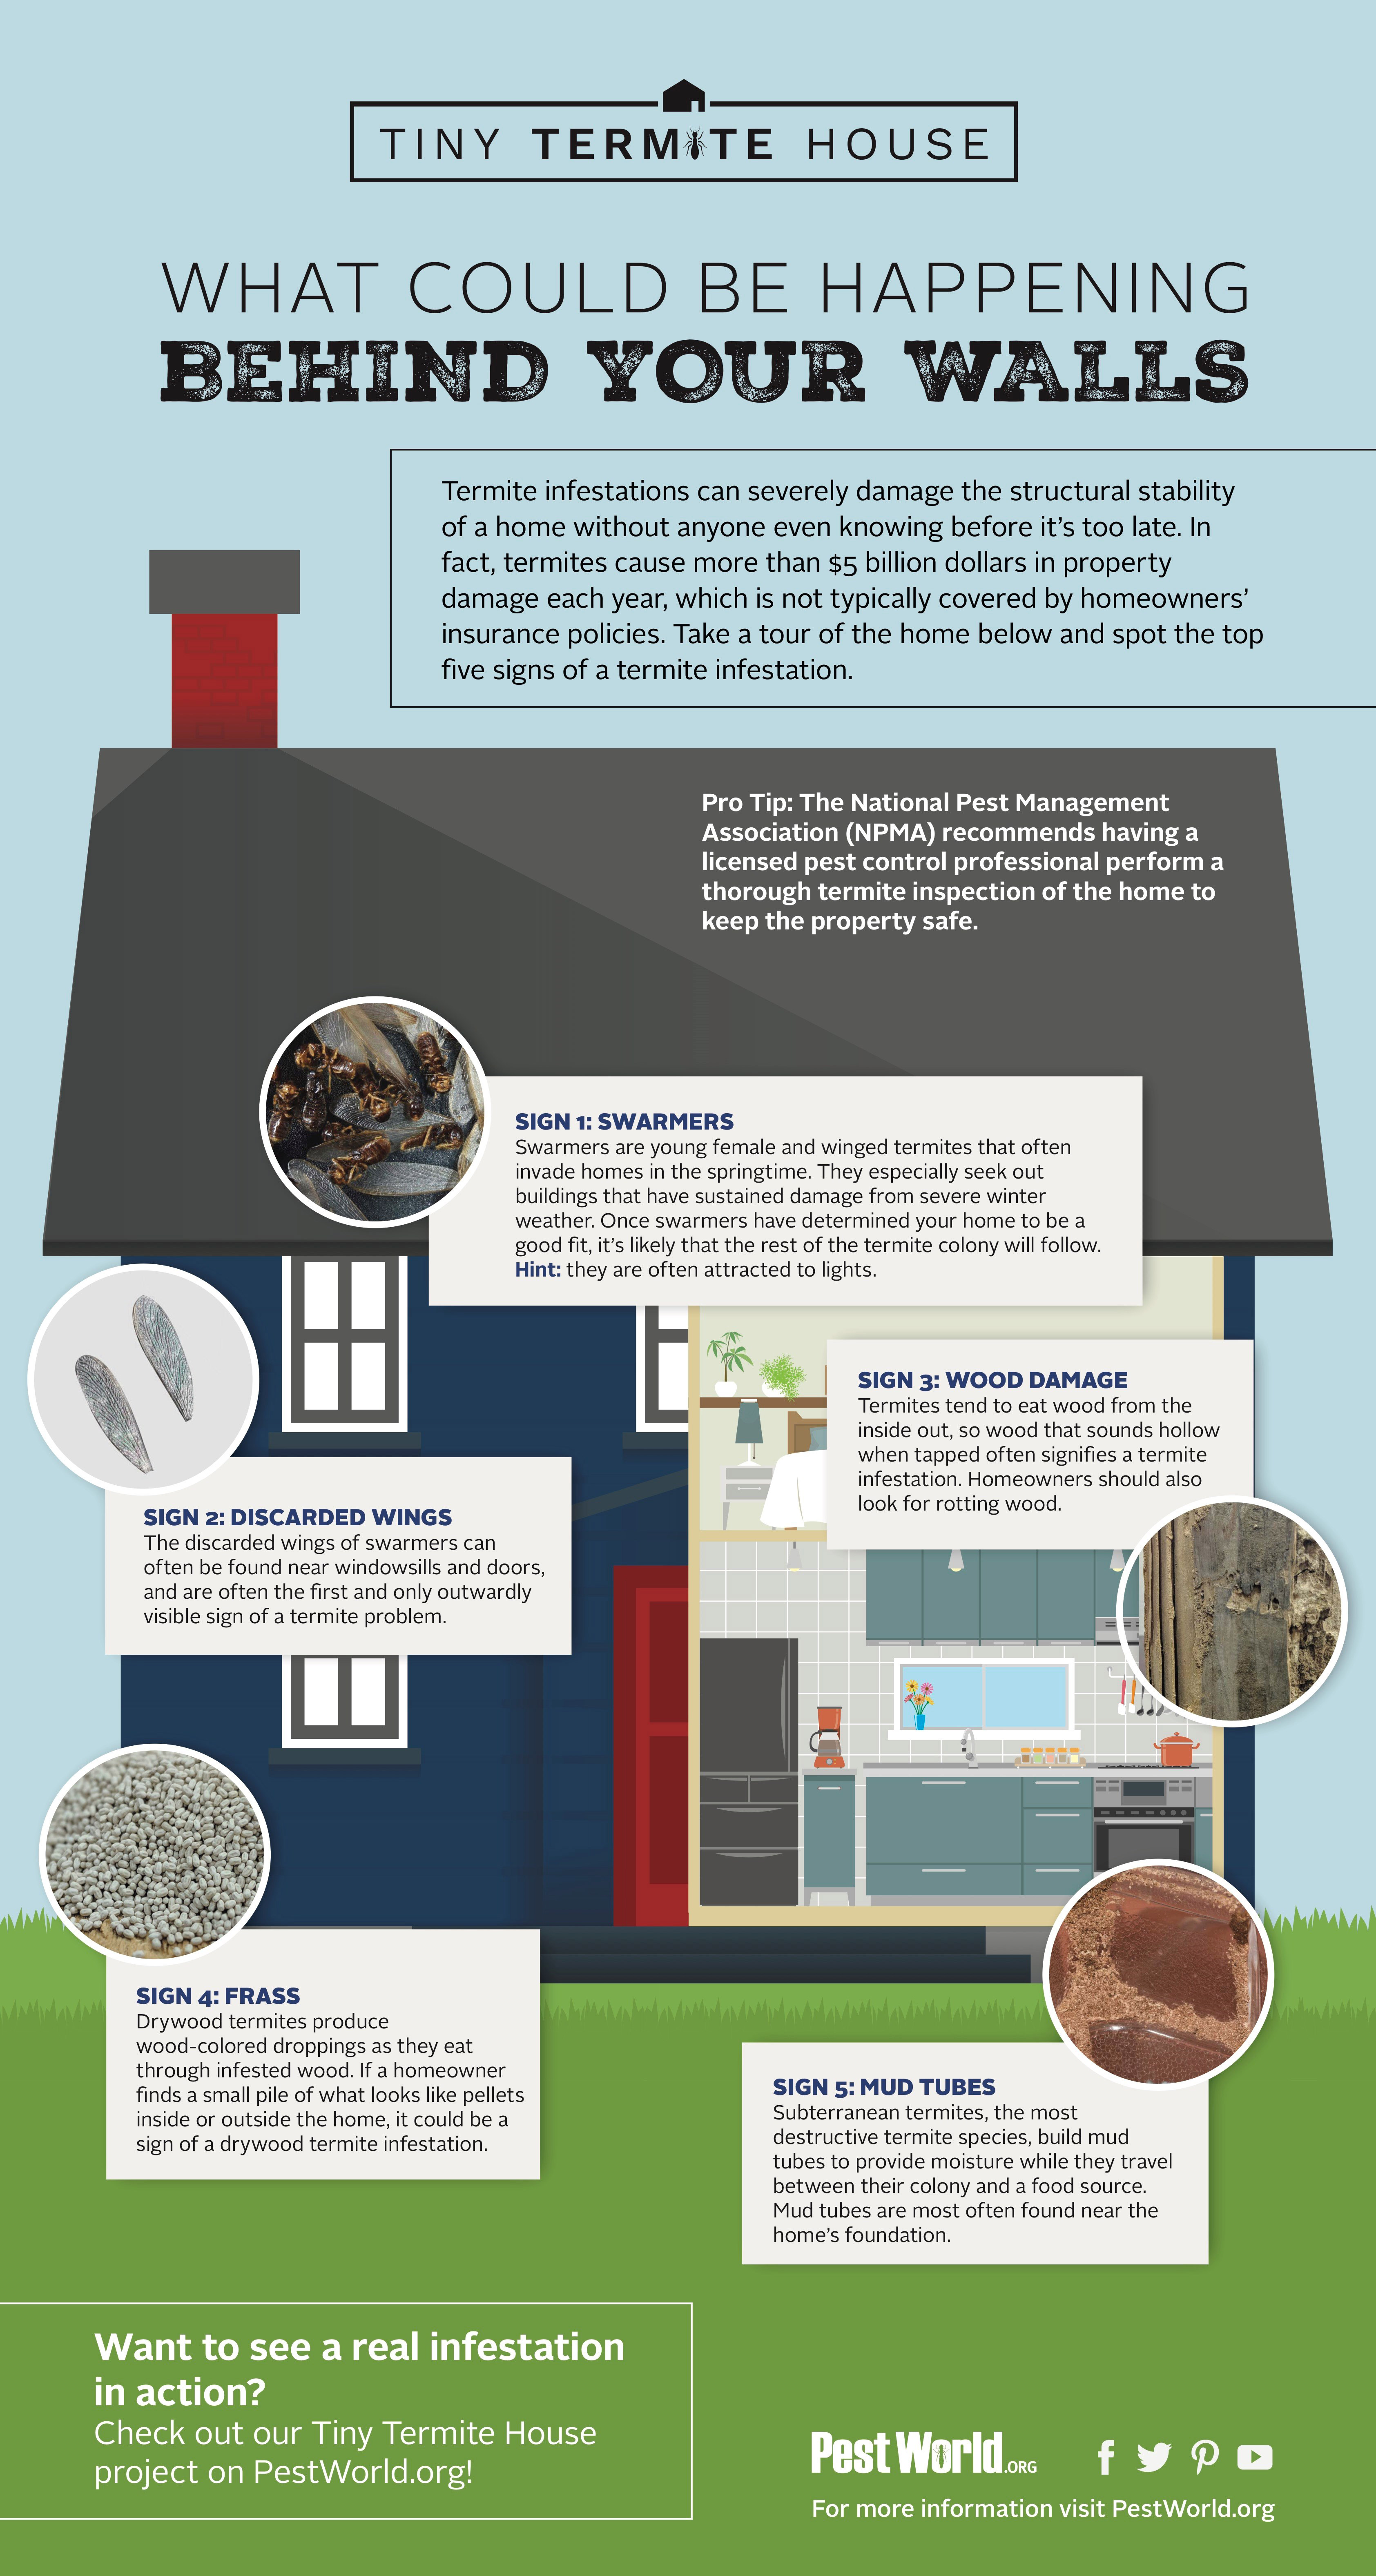 A1 Exterminators Termites in Home Infographic